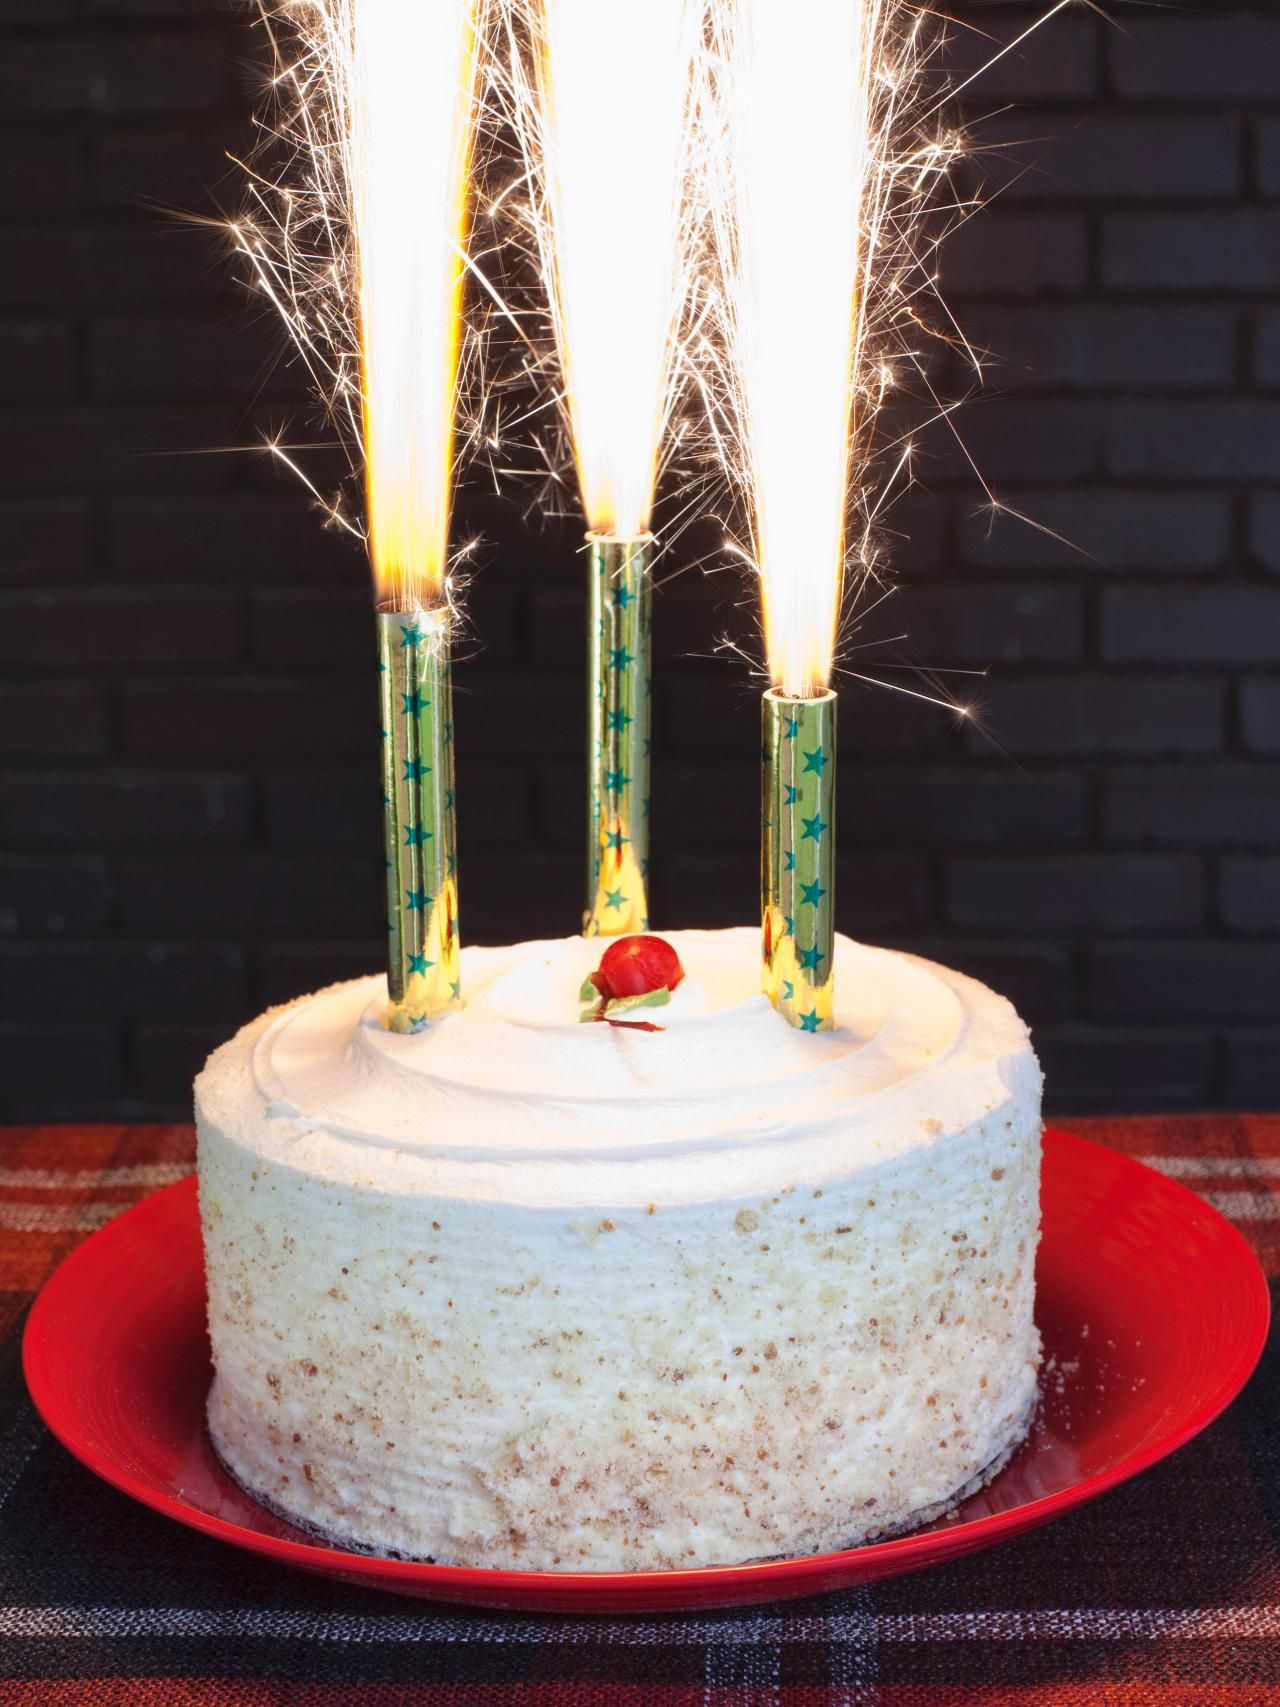 Sparkler Cake Toppers Make A Spectacle Of Your Dessert Presentation With Sparklers Keep In Mind That Safety Is First Only Use If Outdoor